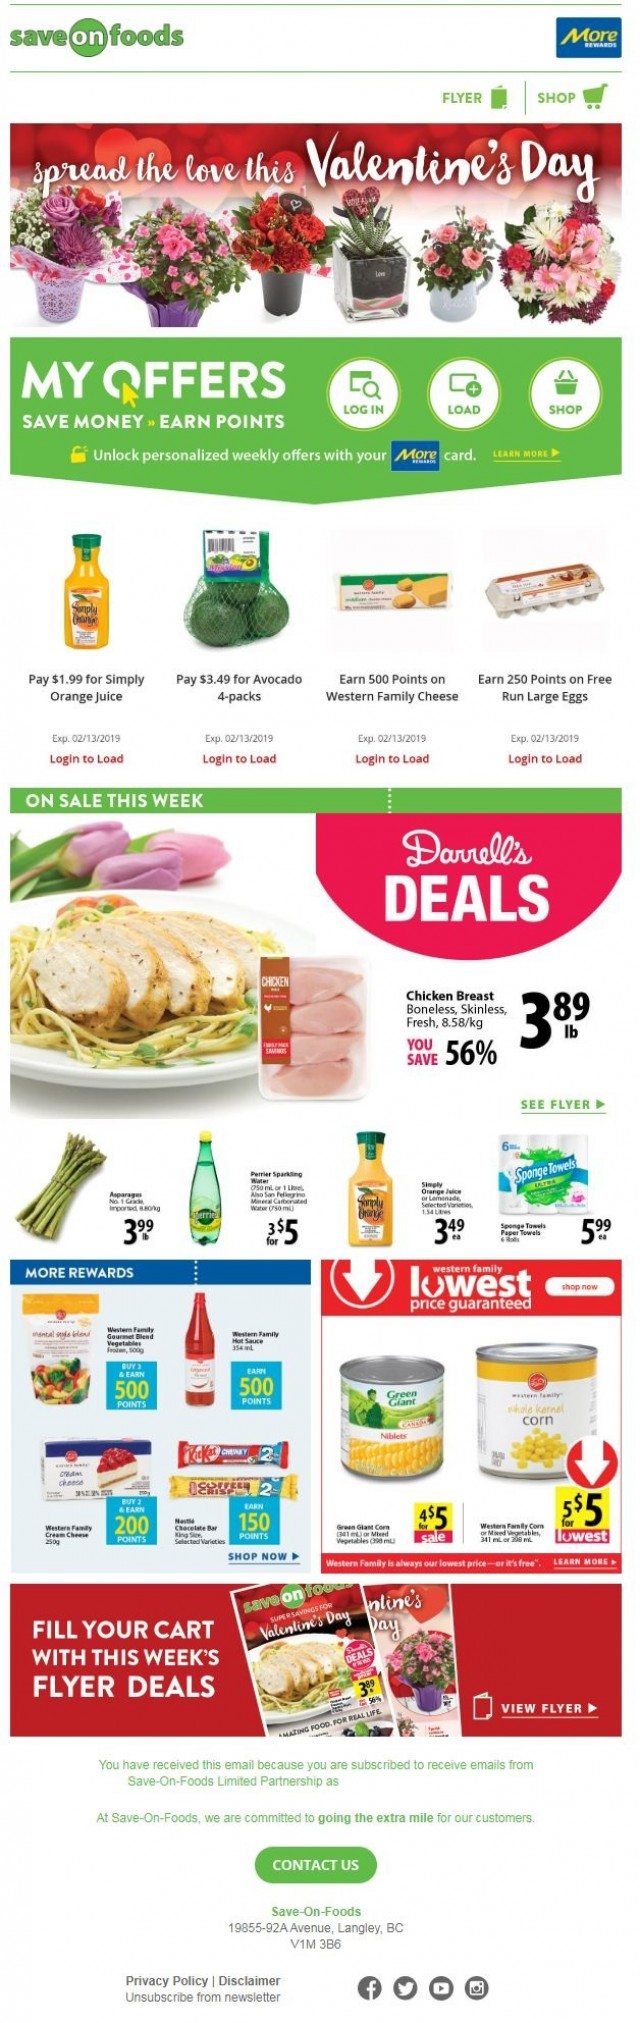 Coupon for: Save on foods - spread the love this Vlaentine's Day